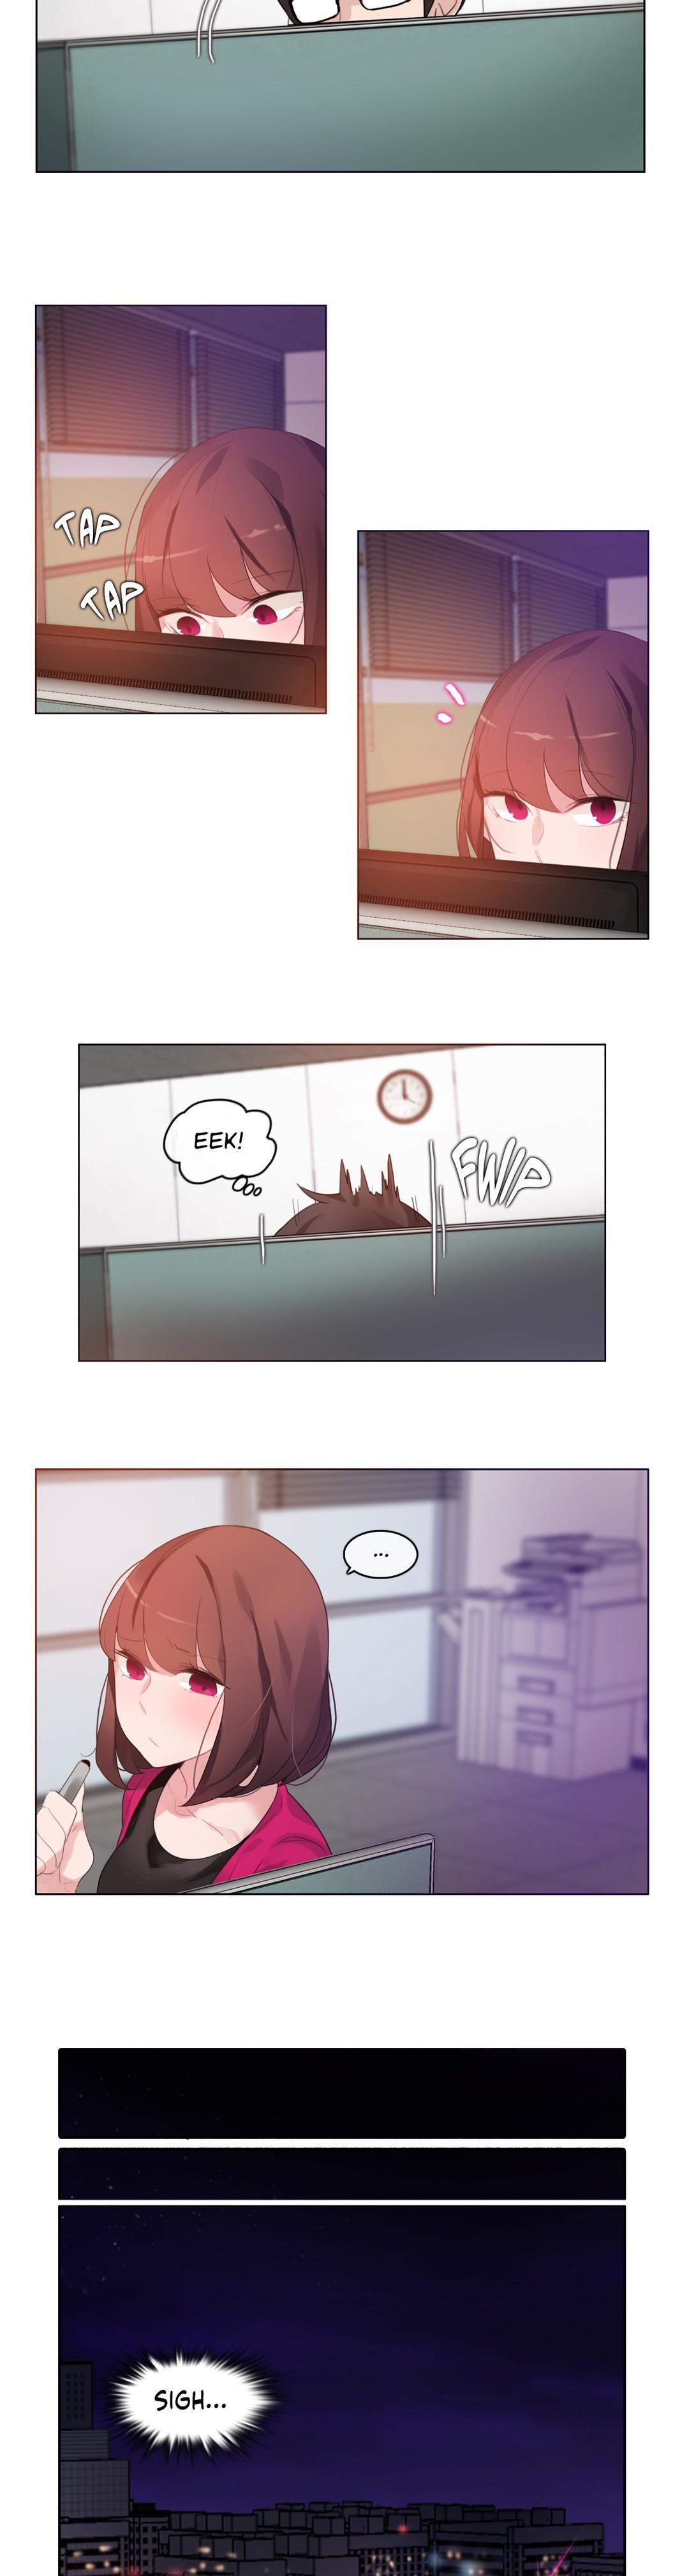 A Pervert's Daily Life Ch. 1-34 578